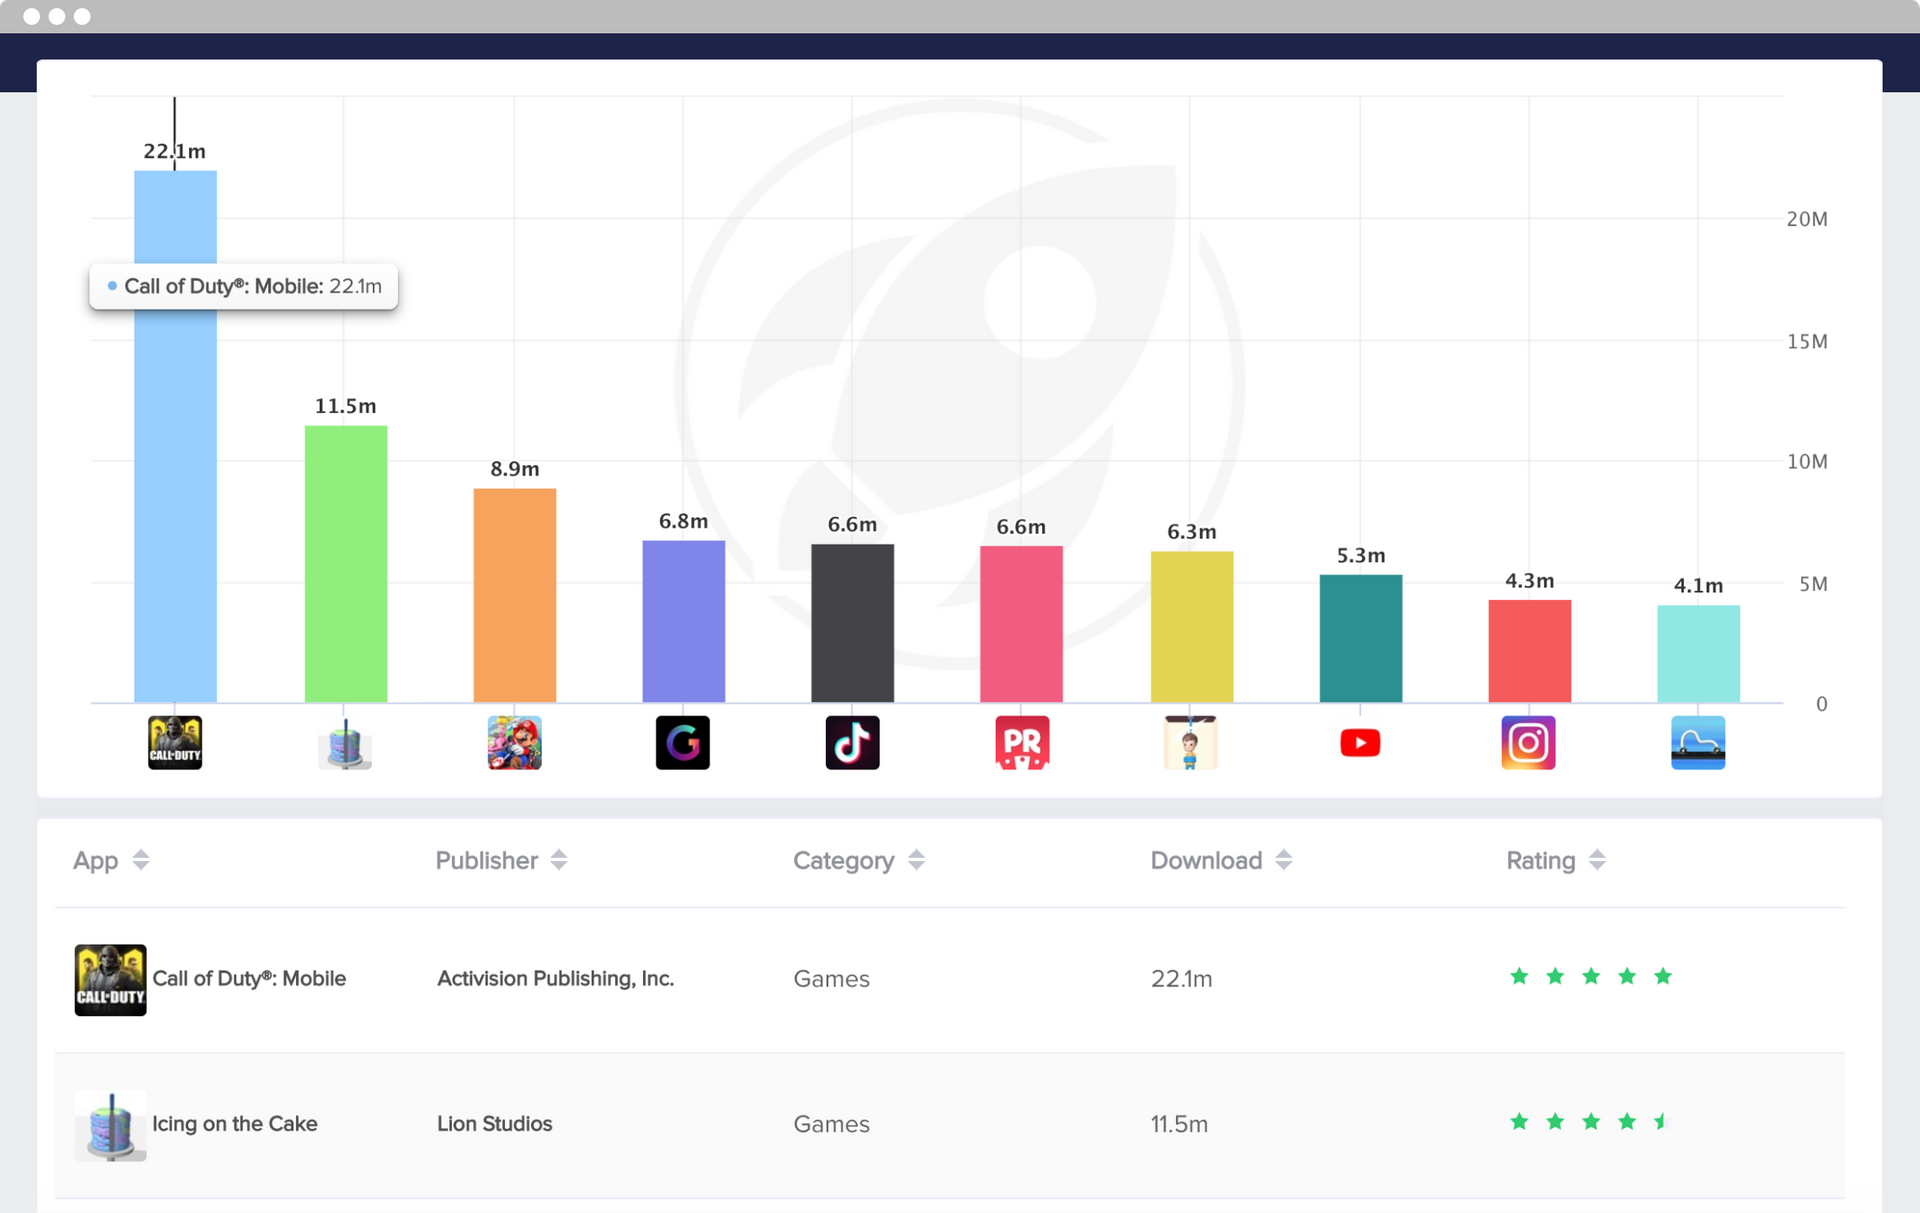 MobileAction's Market Intelligence Product Top Apps and Publishers Tool